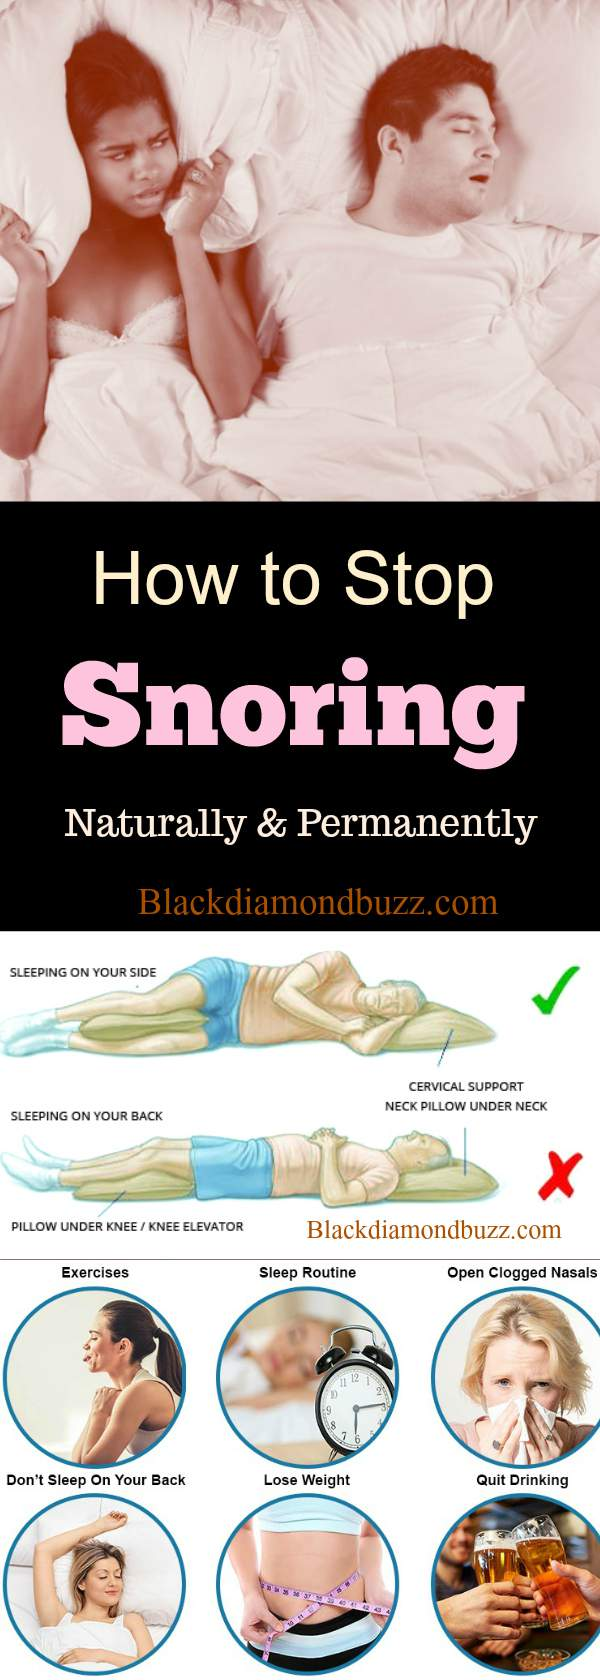 How to Stop Snoring Naturally and Permanently- 12 Solutions that Work